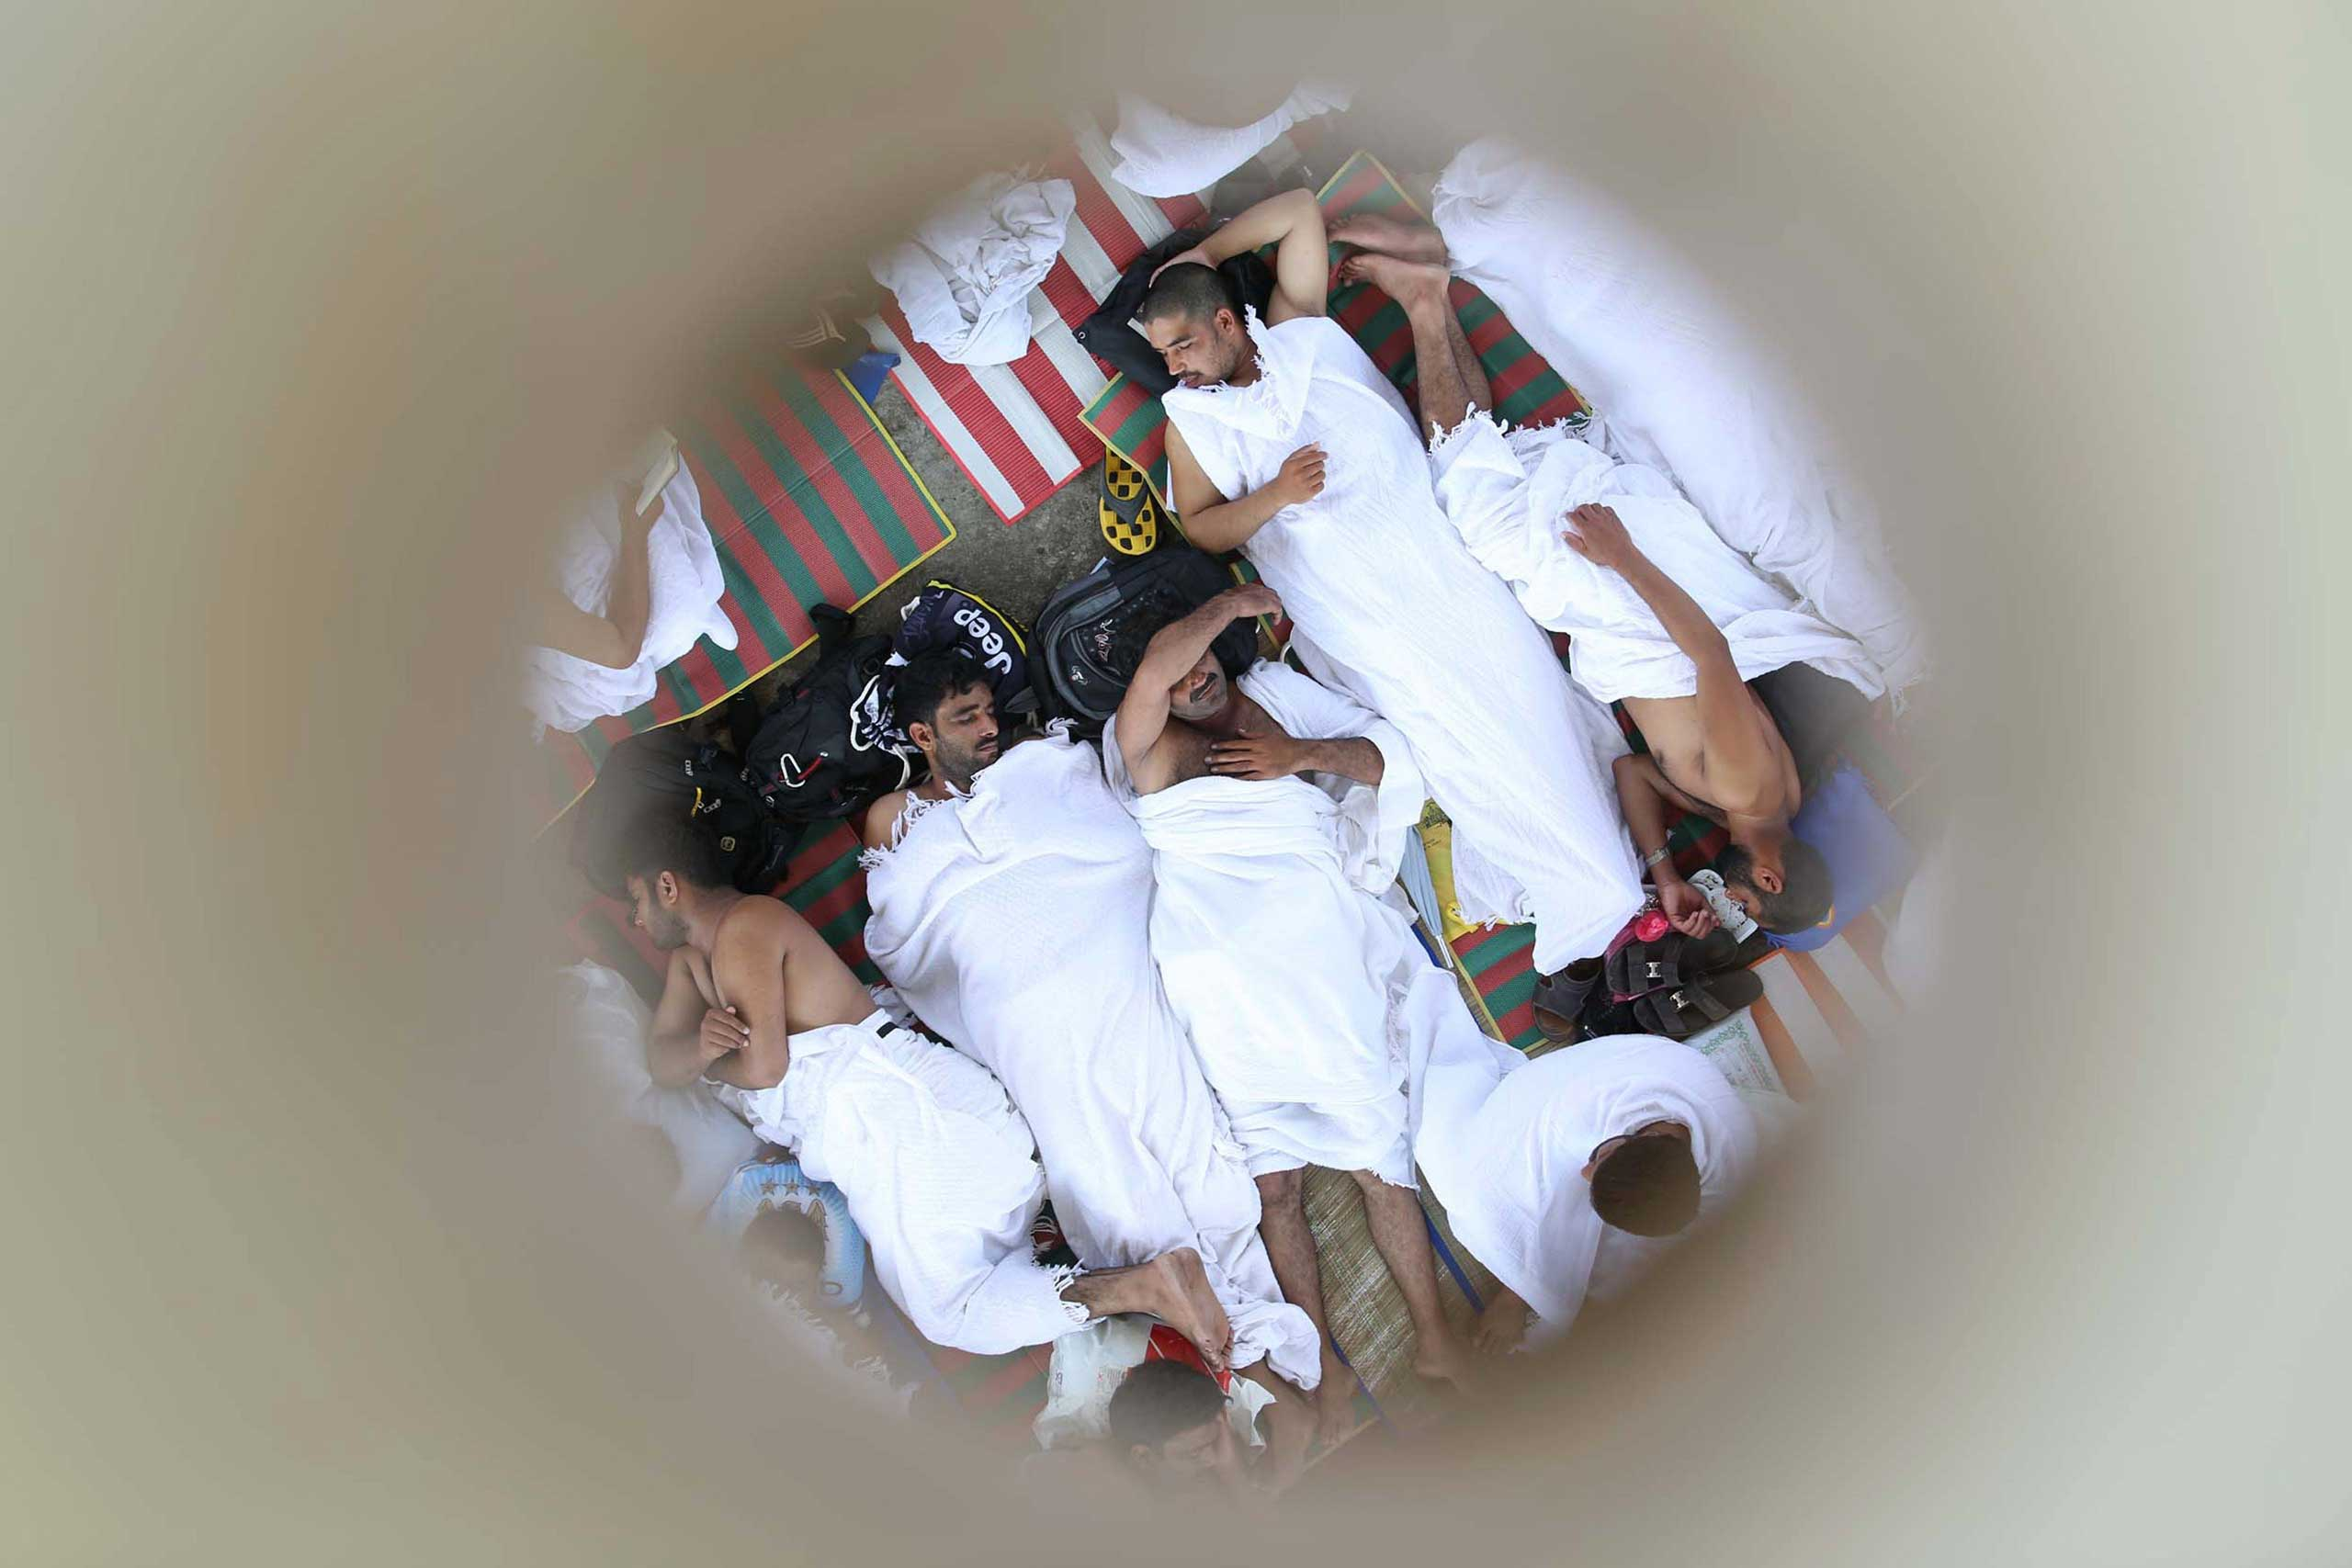 Oct. 2, 2014. Muslim pilgrims are pictured through a roof opening as they sleep during the annual haj pilgrimage in Mena, near the holy city of Mecca.